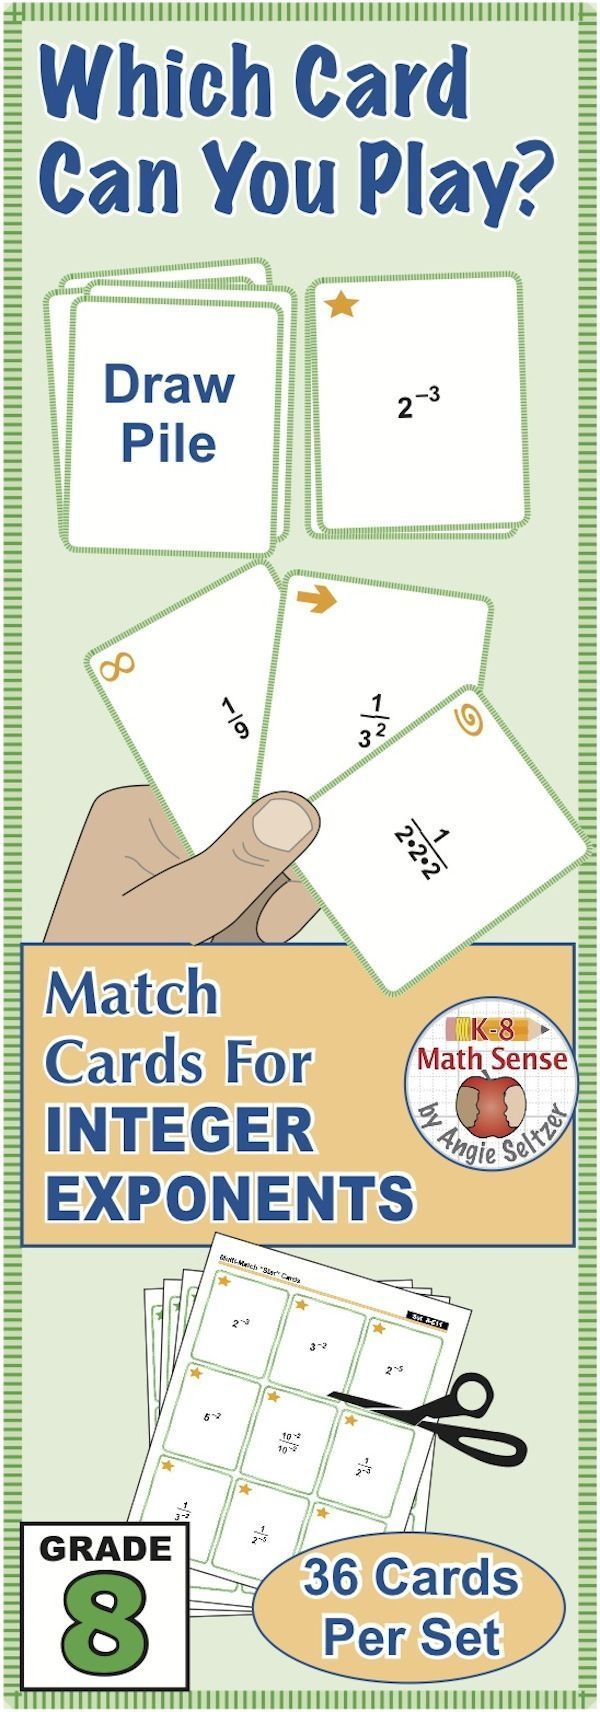 This FREE set of printable Multi-Match game cards helps students simplify expressions with negative integer exponents. Just print on five sheets of paper and have students cut the cards and play games.